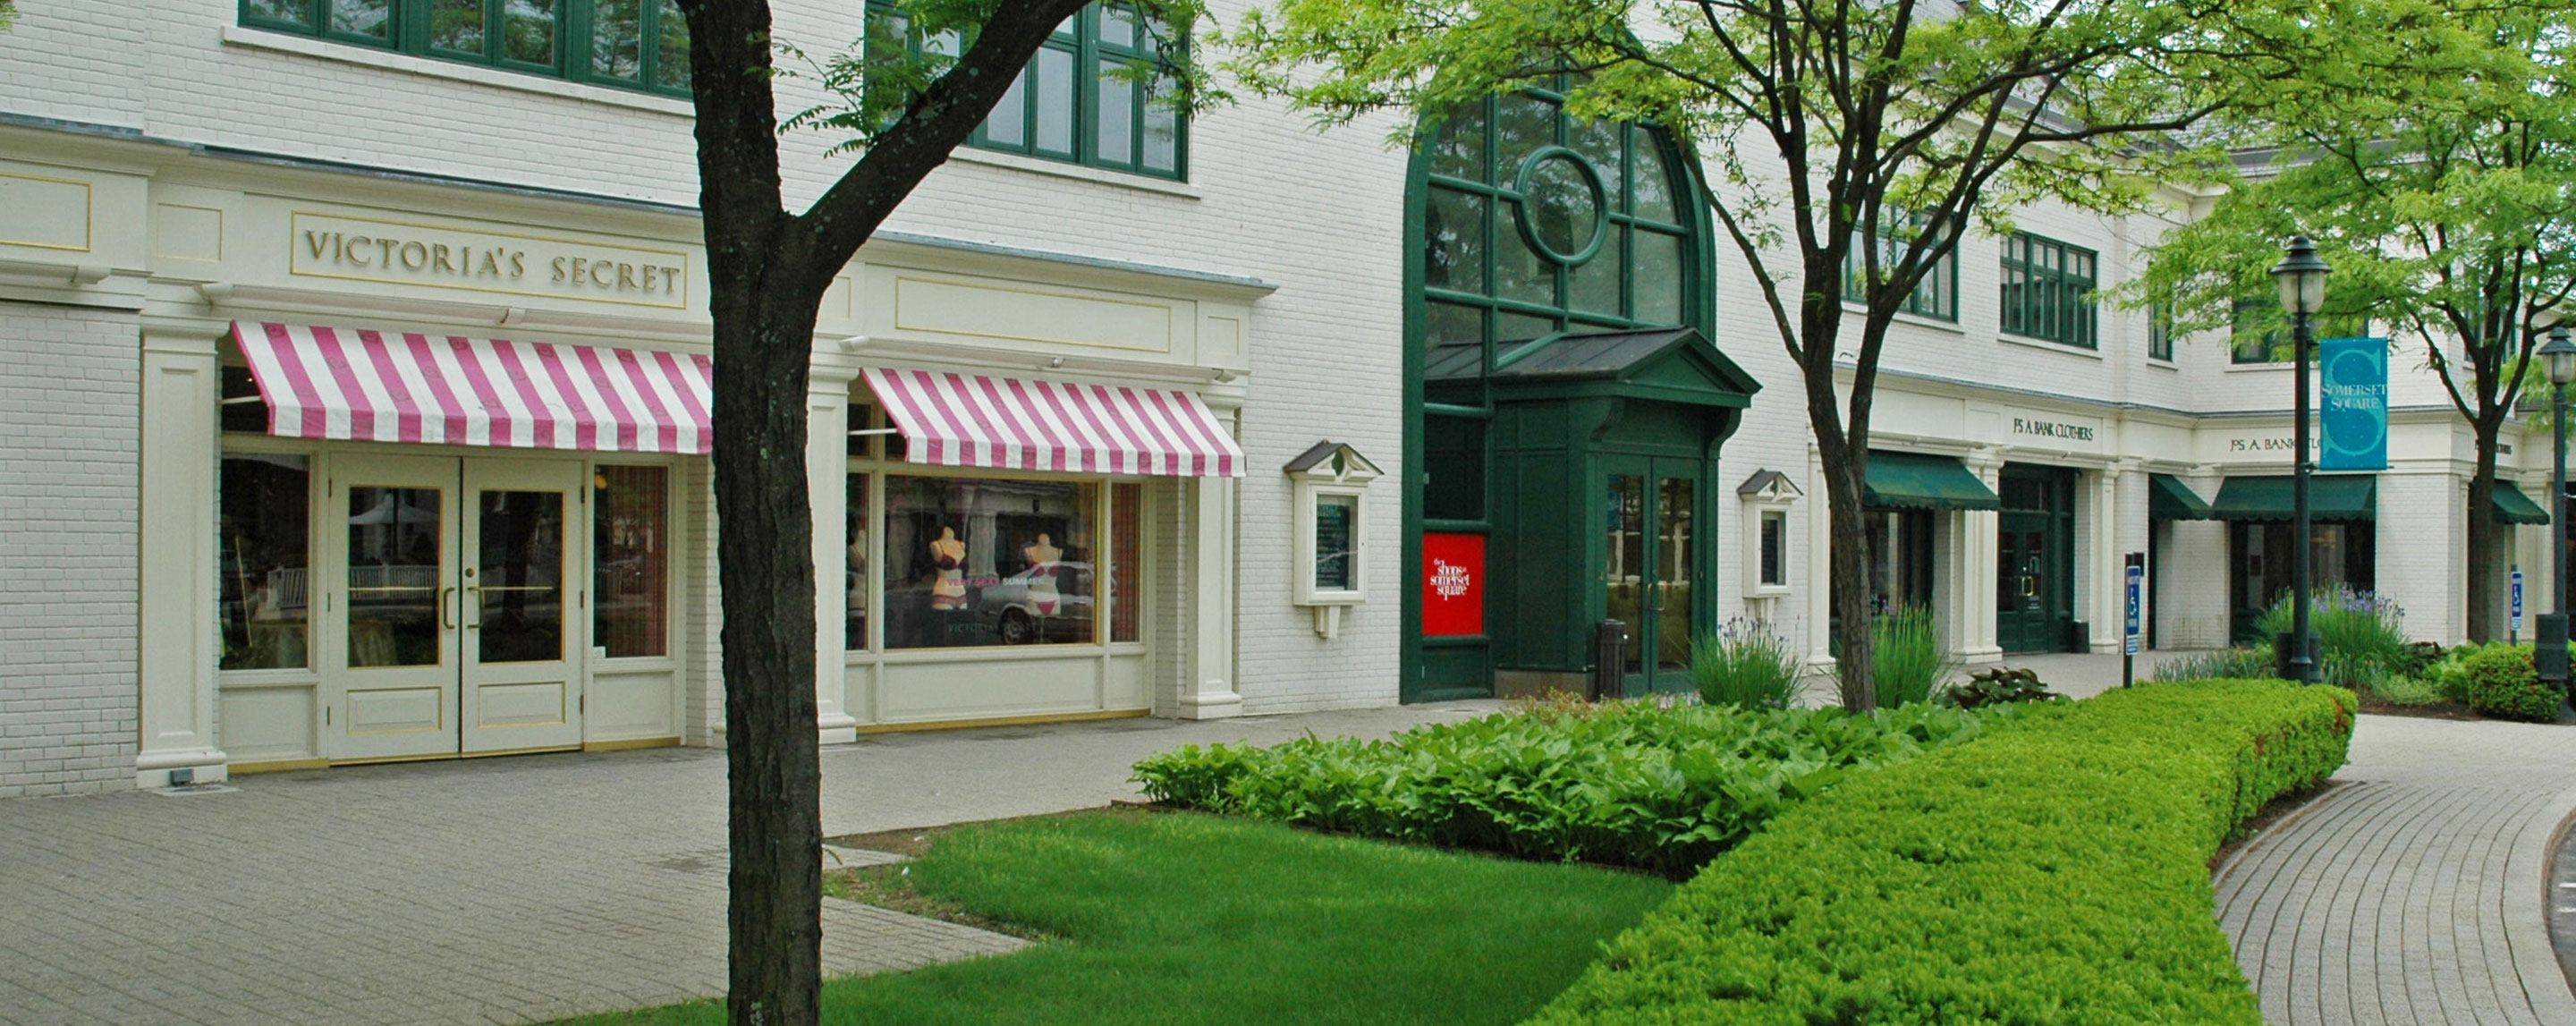 A Victoria's Secret storefront is stands behind a walkway and lush green landscaping.